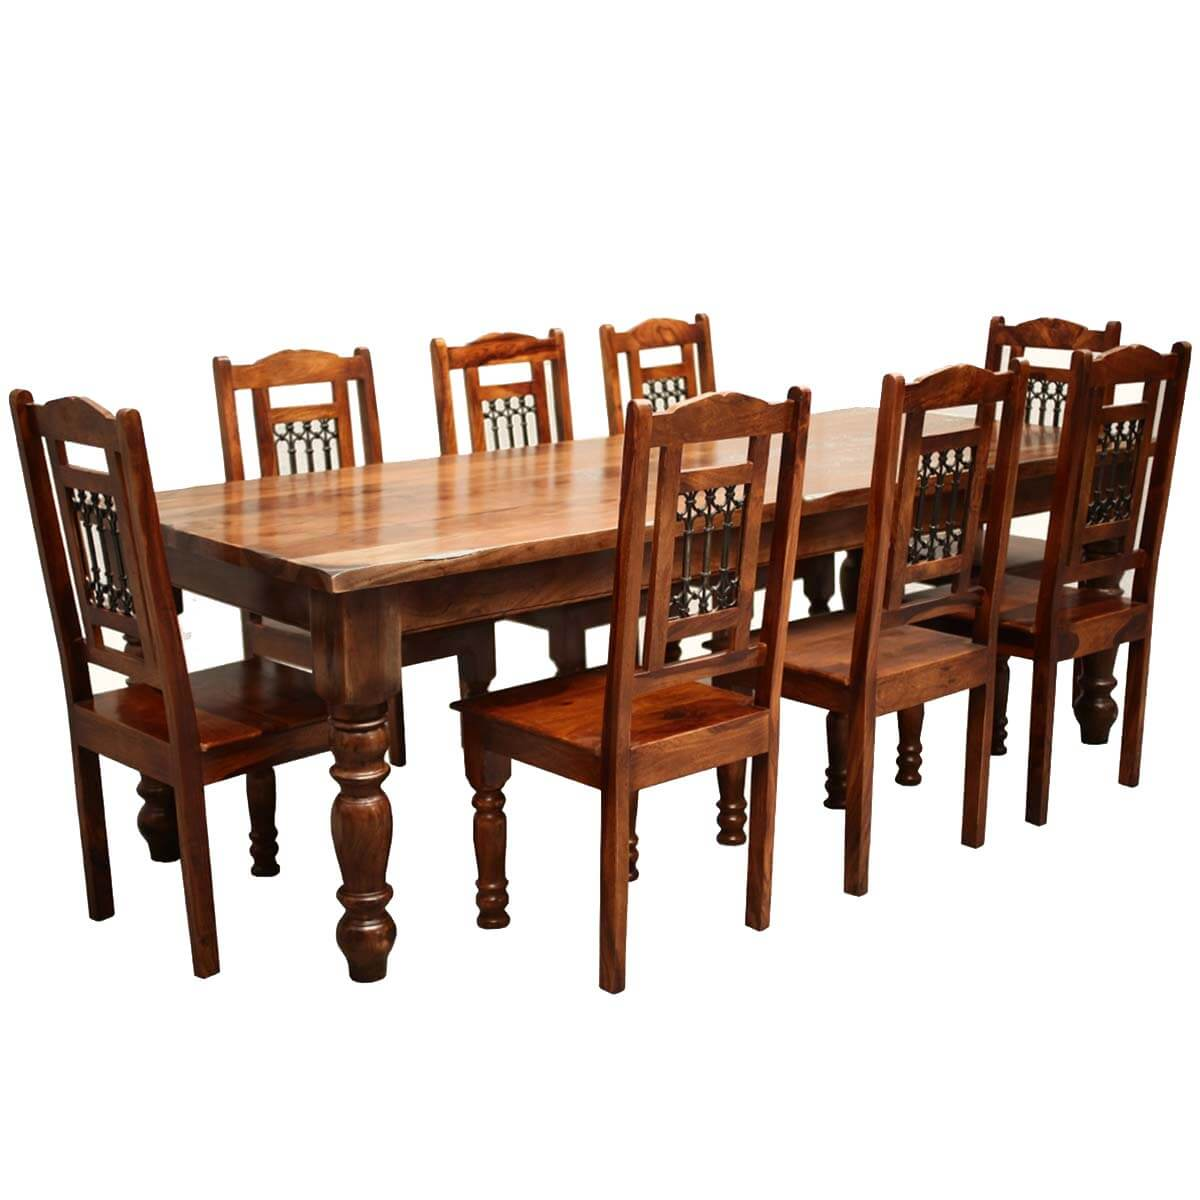 8 Chair Dining Set Rustic Furniture Solid Wood Large Dining Table 8 Chair Set